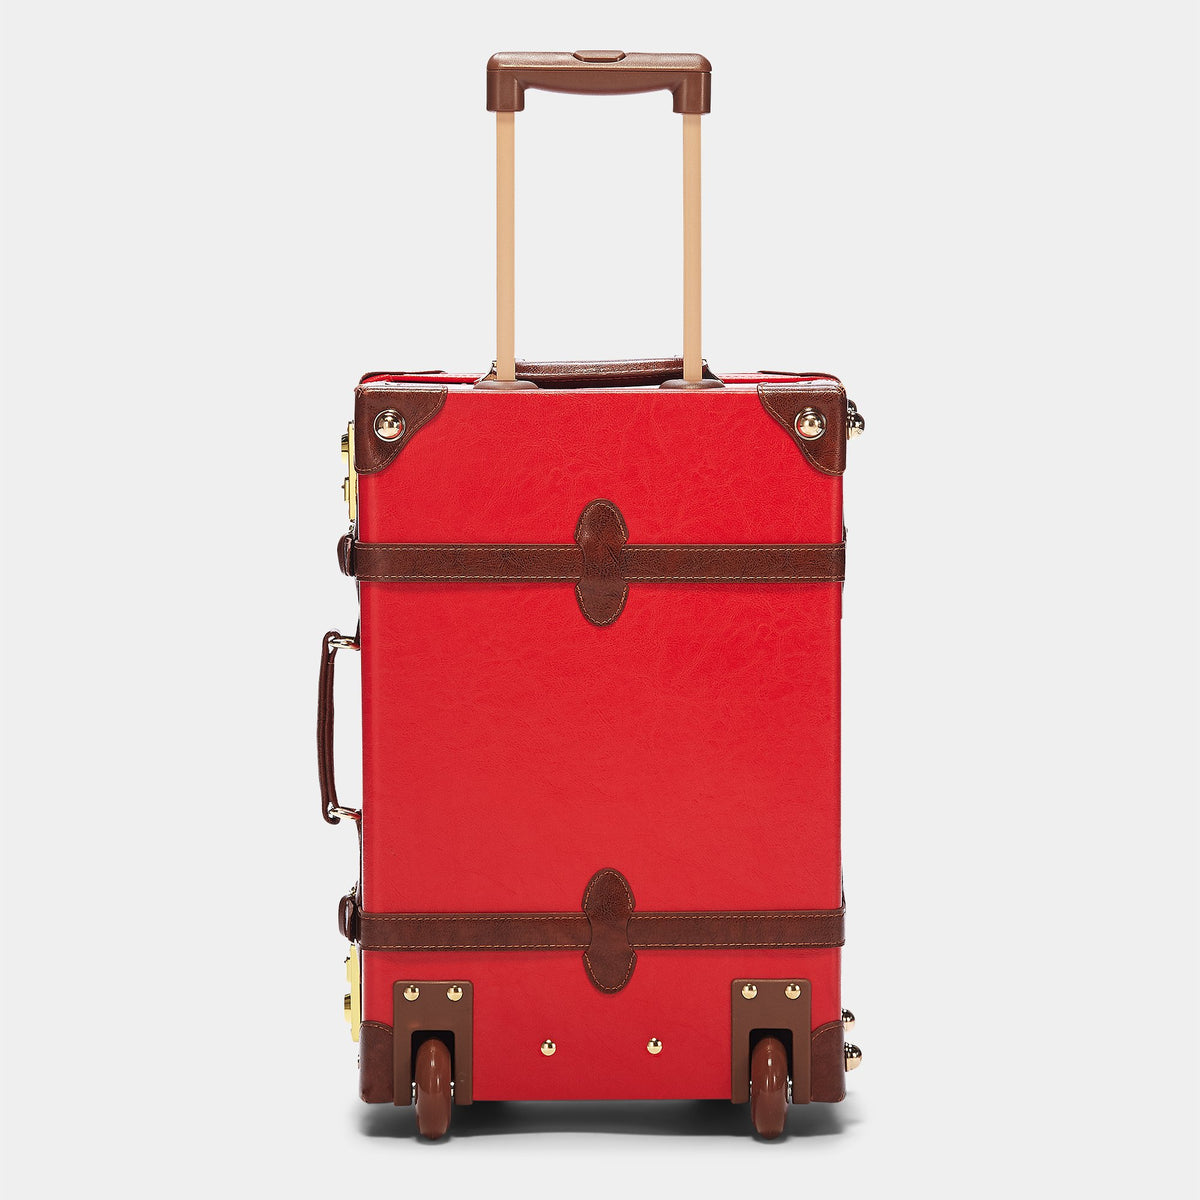 The Entrepreneur Carryon in Red - Vintage-Inspired Vegan Luggage - Exterior Back with Extendable Handle